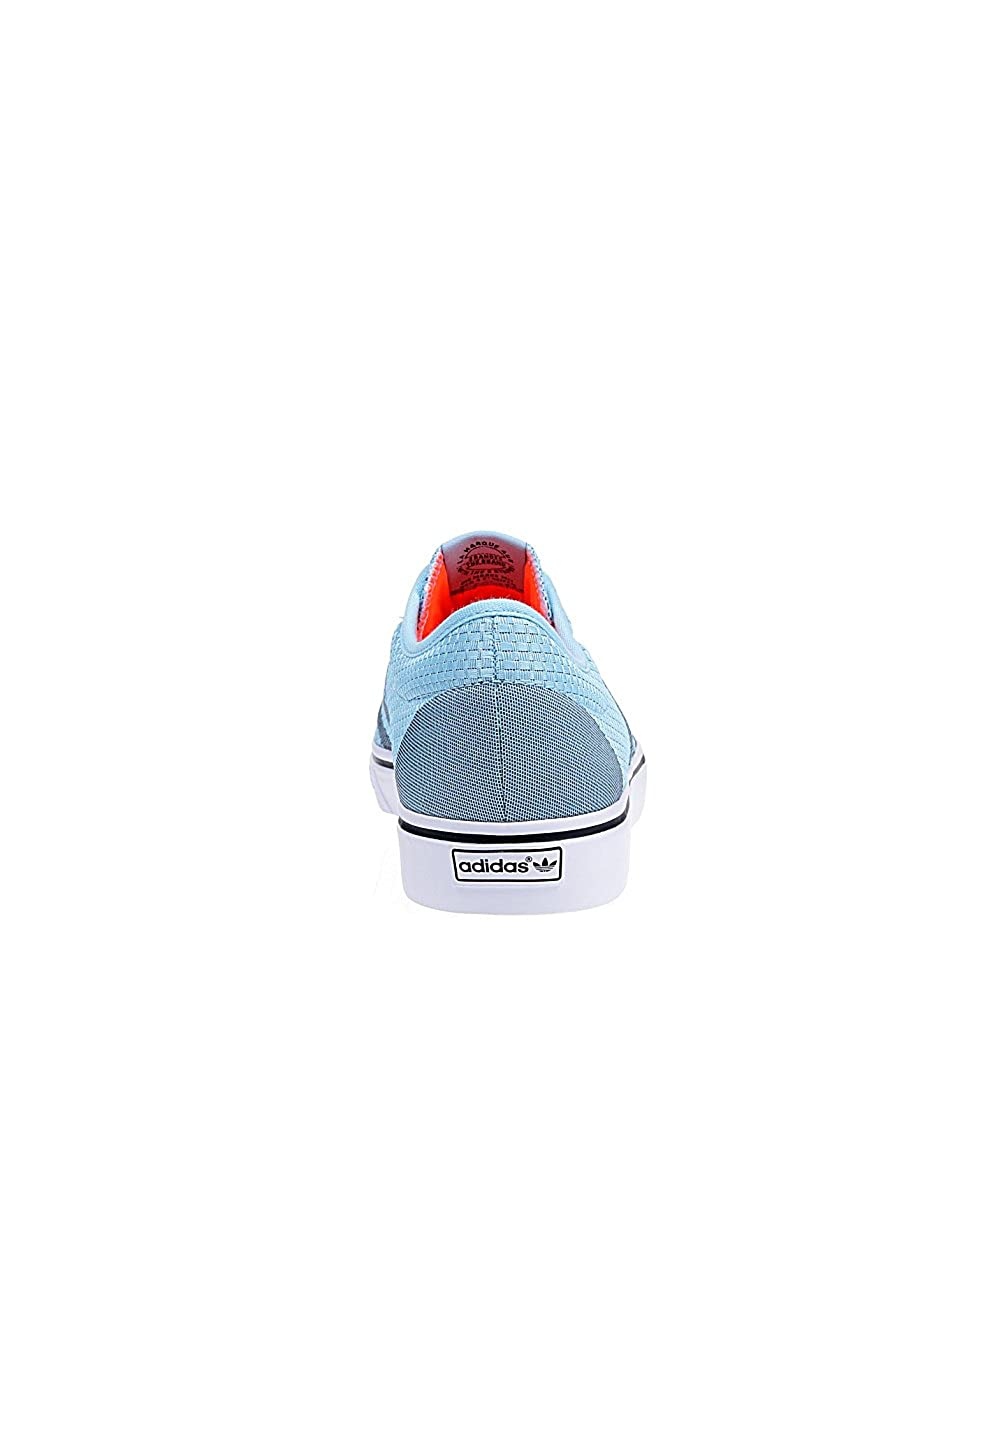 super popular 974d0 7721f ADIEASE CIE - Chaussures Homme Adidas Amazon.fr Chaussures e